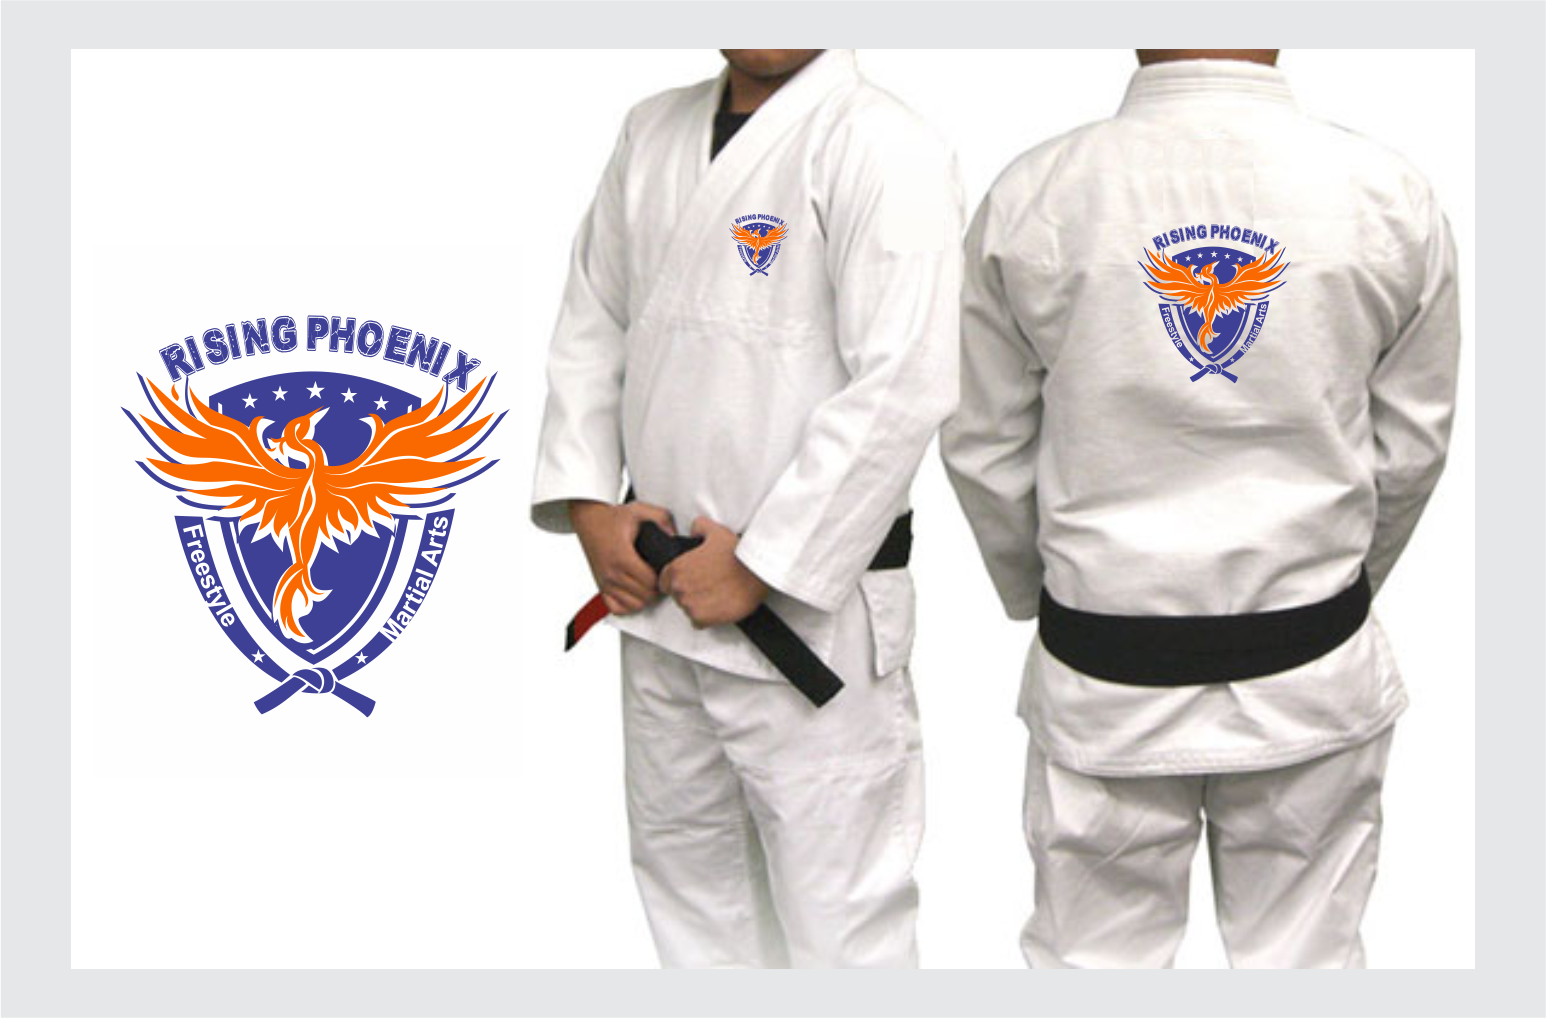 Encompass the meaning of the Rising Phoenix for a growing martial arts business